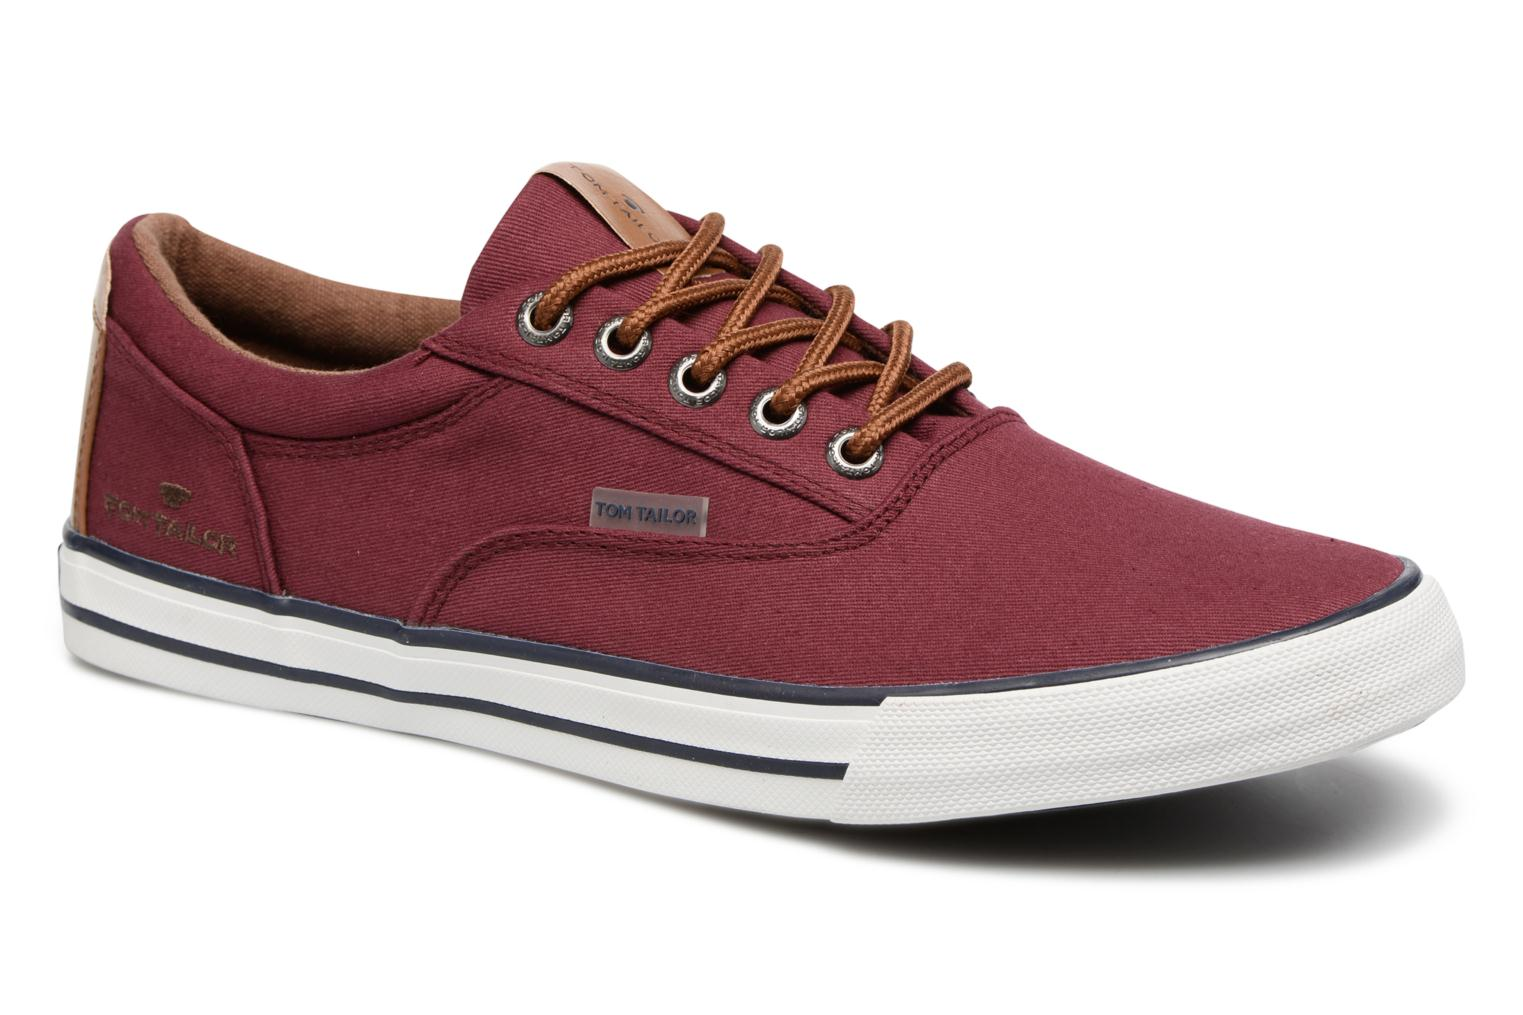 Sneakers Tom Tailor Bordeaux